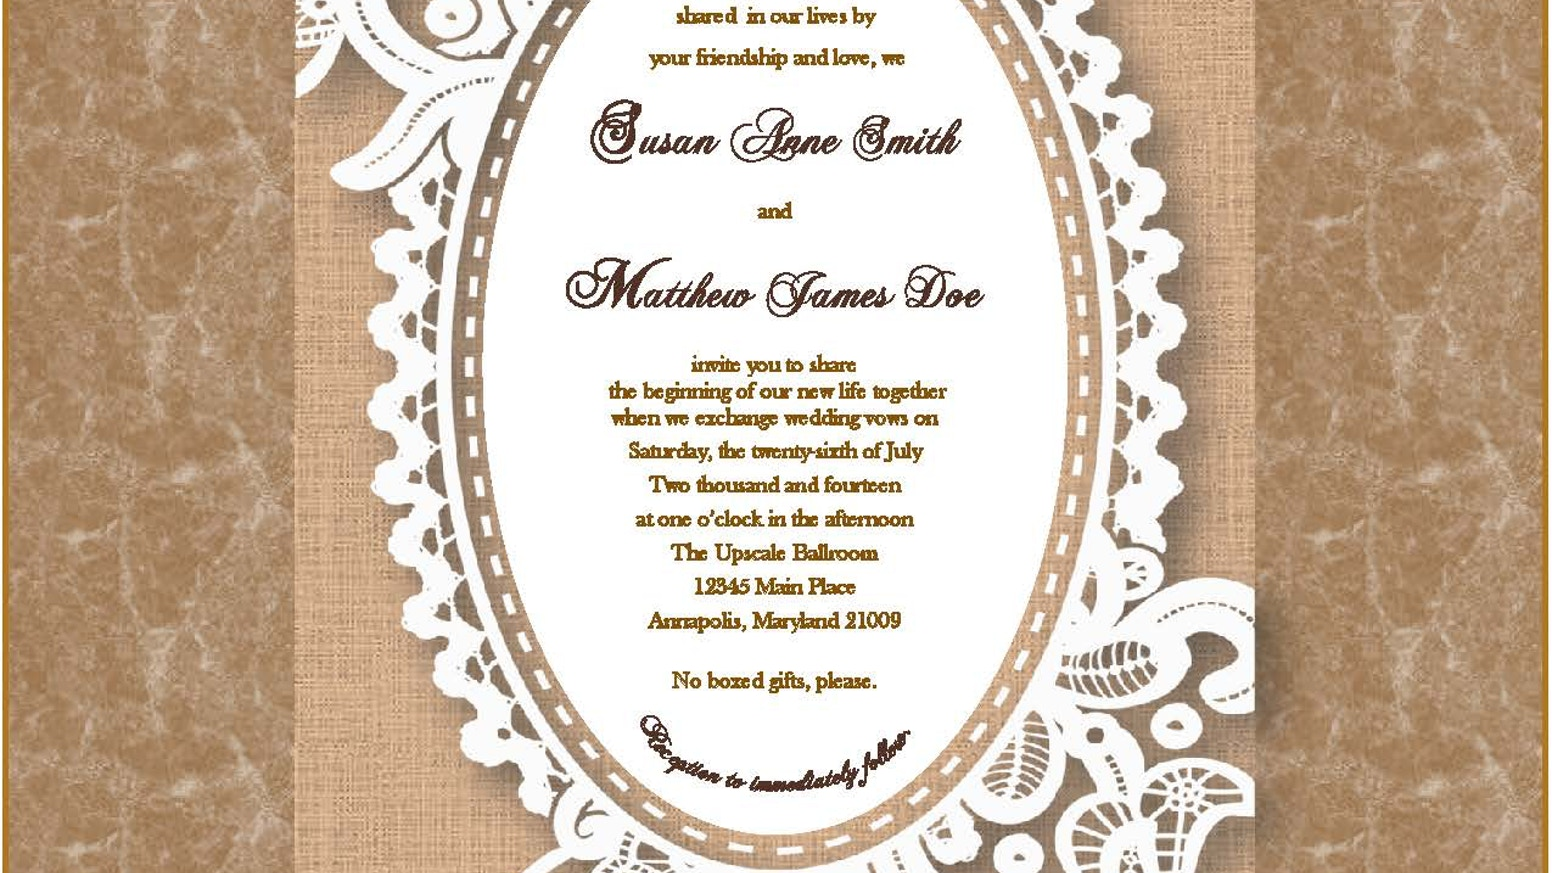 customized creative invitations on a budget by sharlene johnson